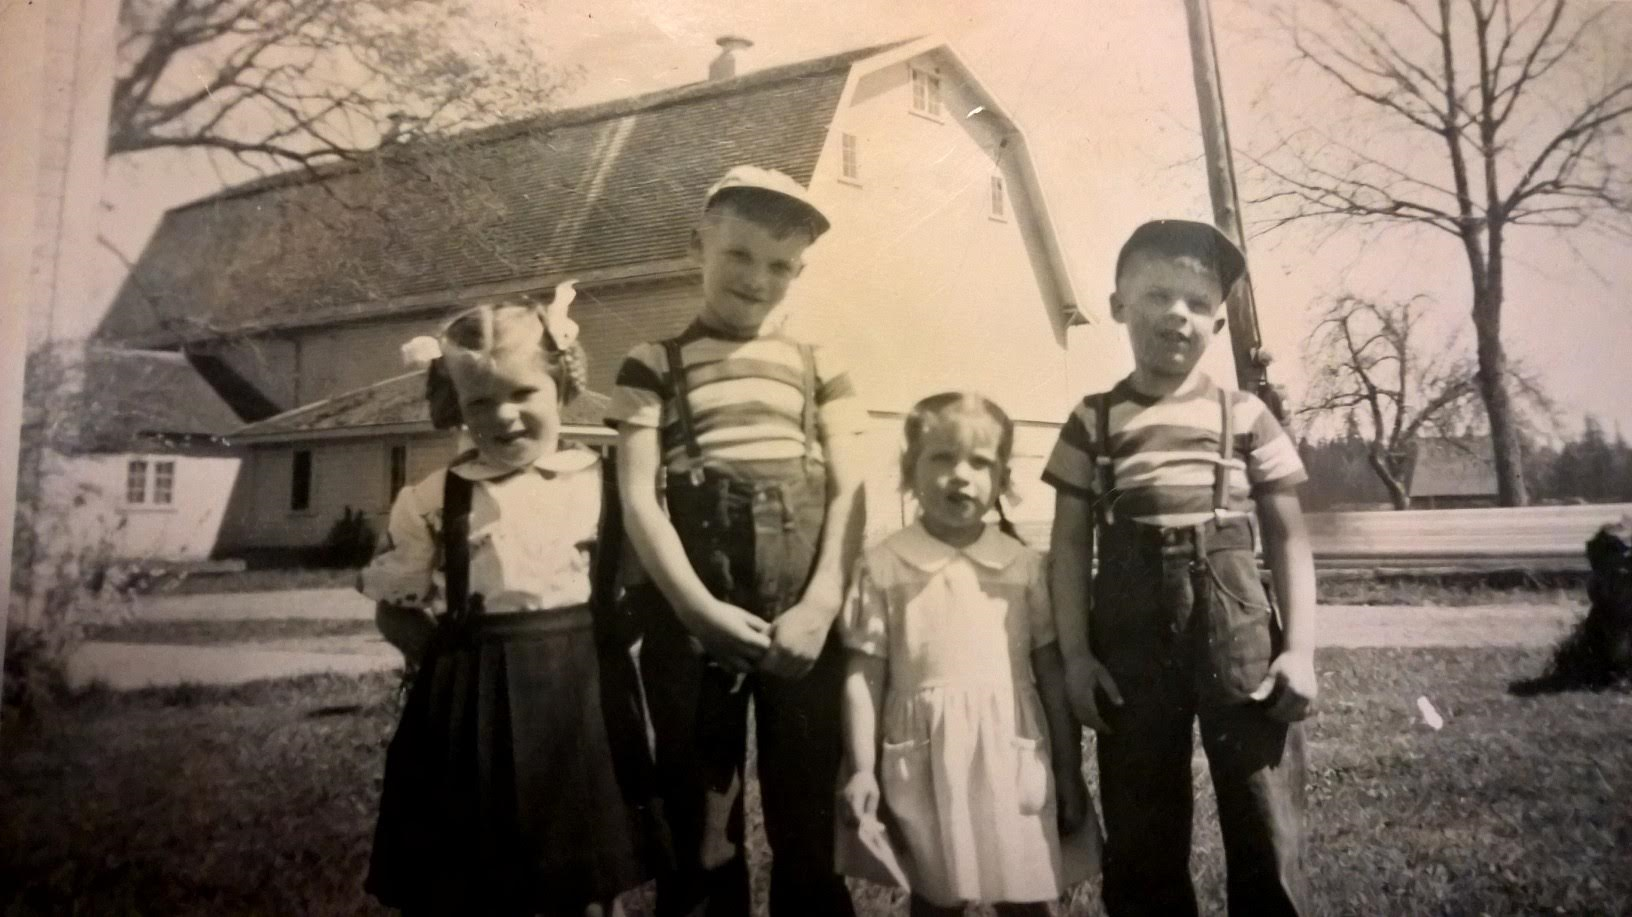 Me, my brother Lyle, my sister Marcia, and my brother Mark.